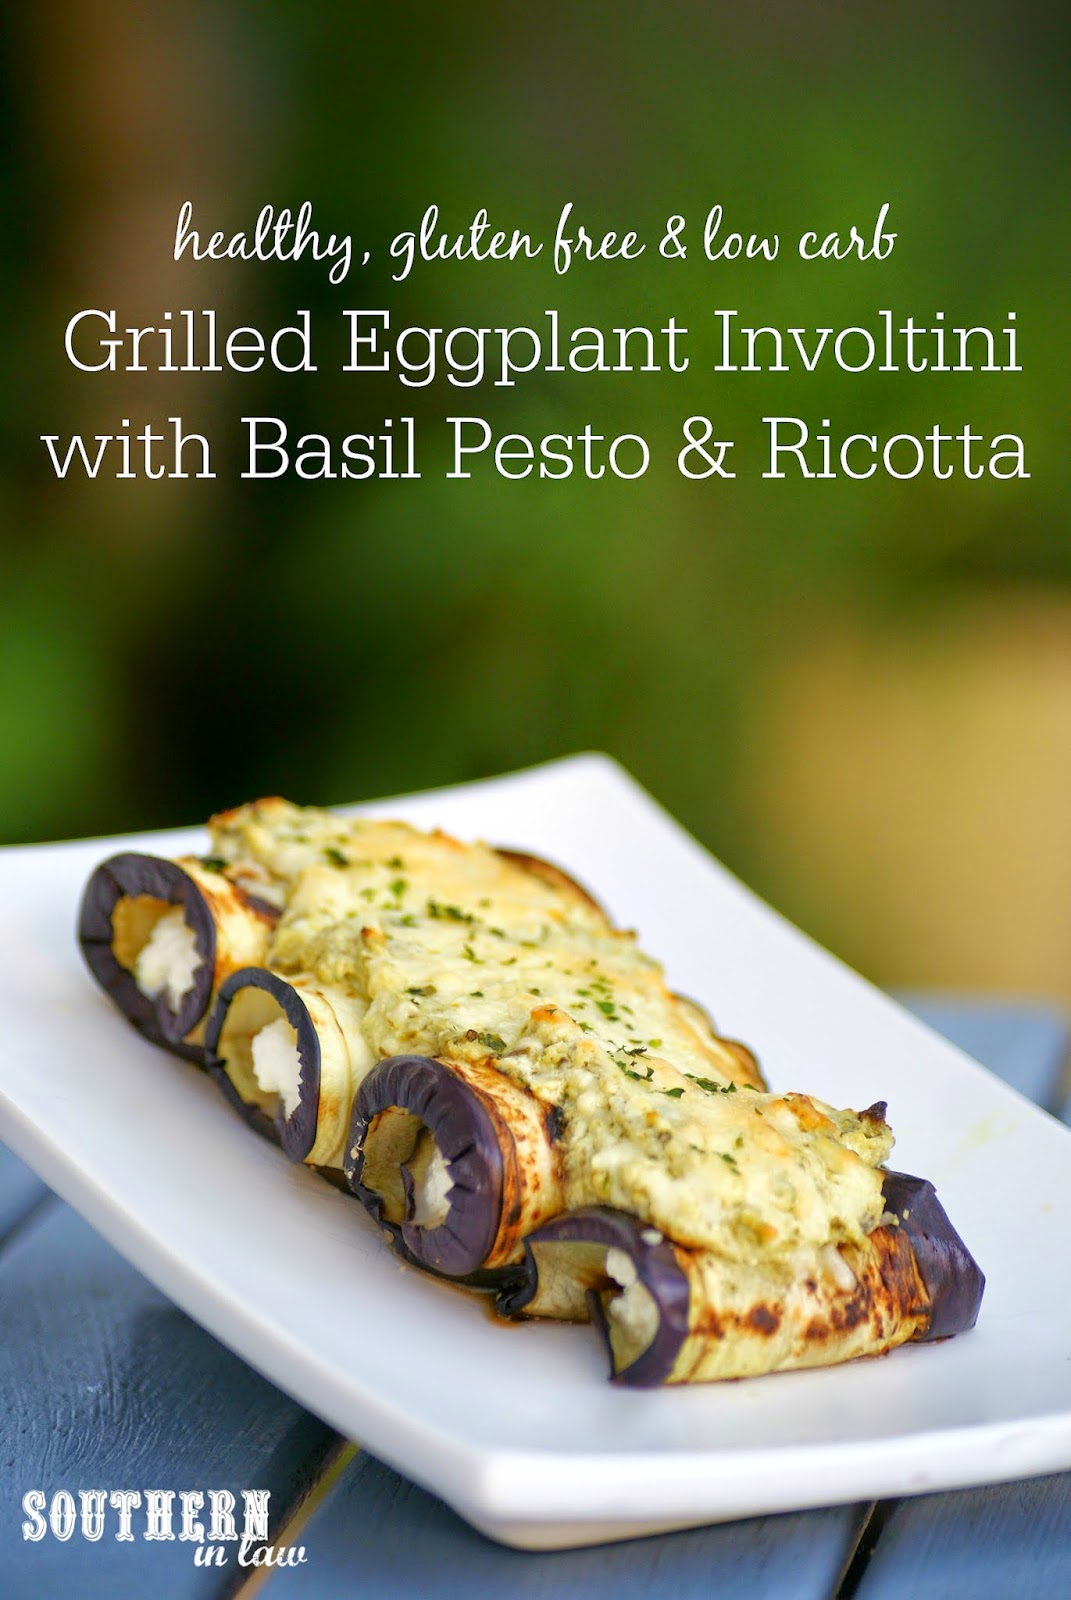 Healthy Eggplant Involtini Recipe with Ricotta and Pesto - healthy, low fat, low carb, gluten free, egg free